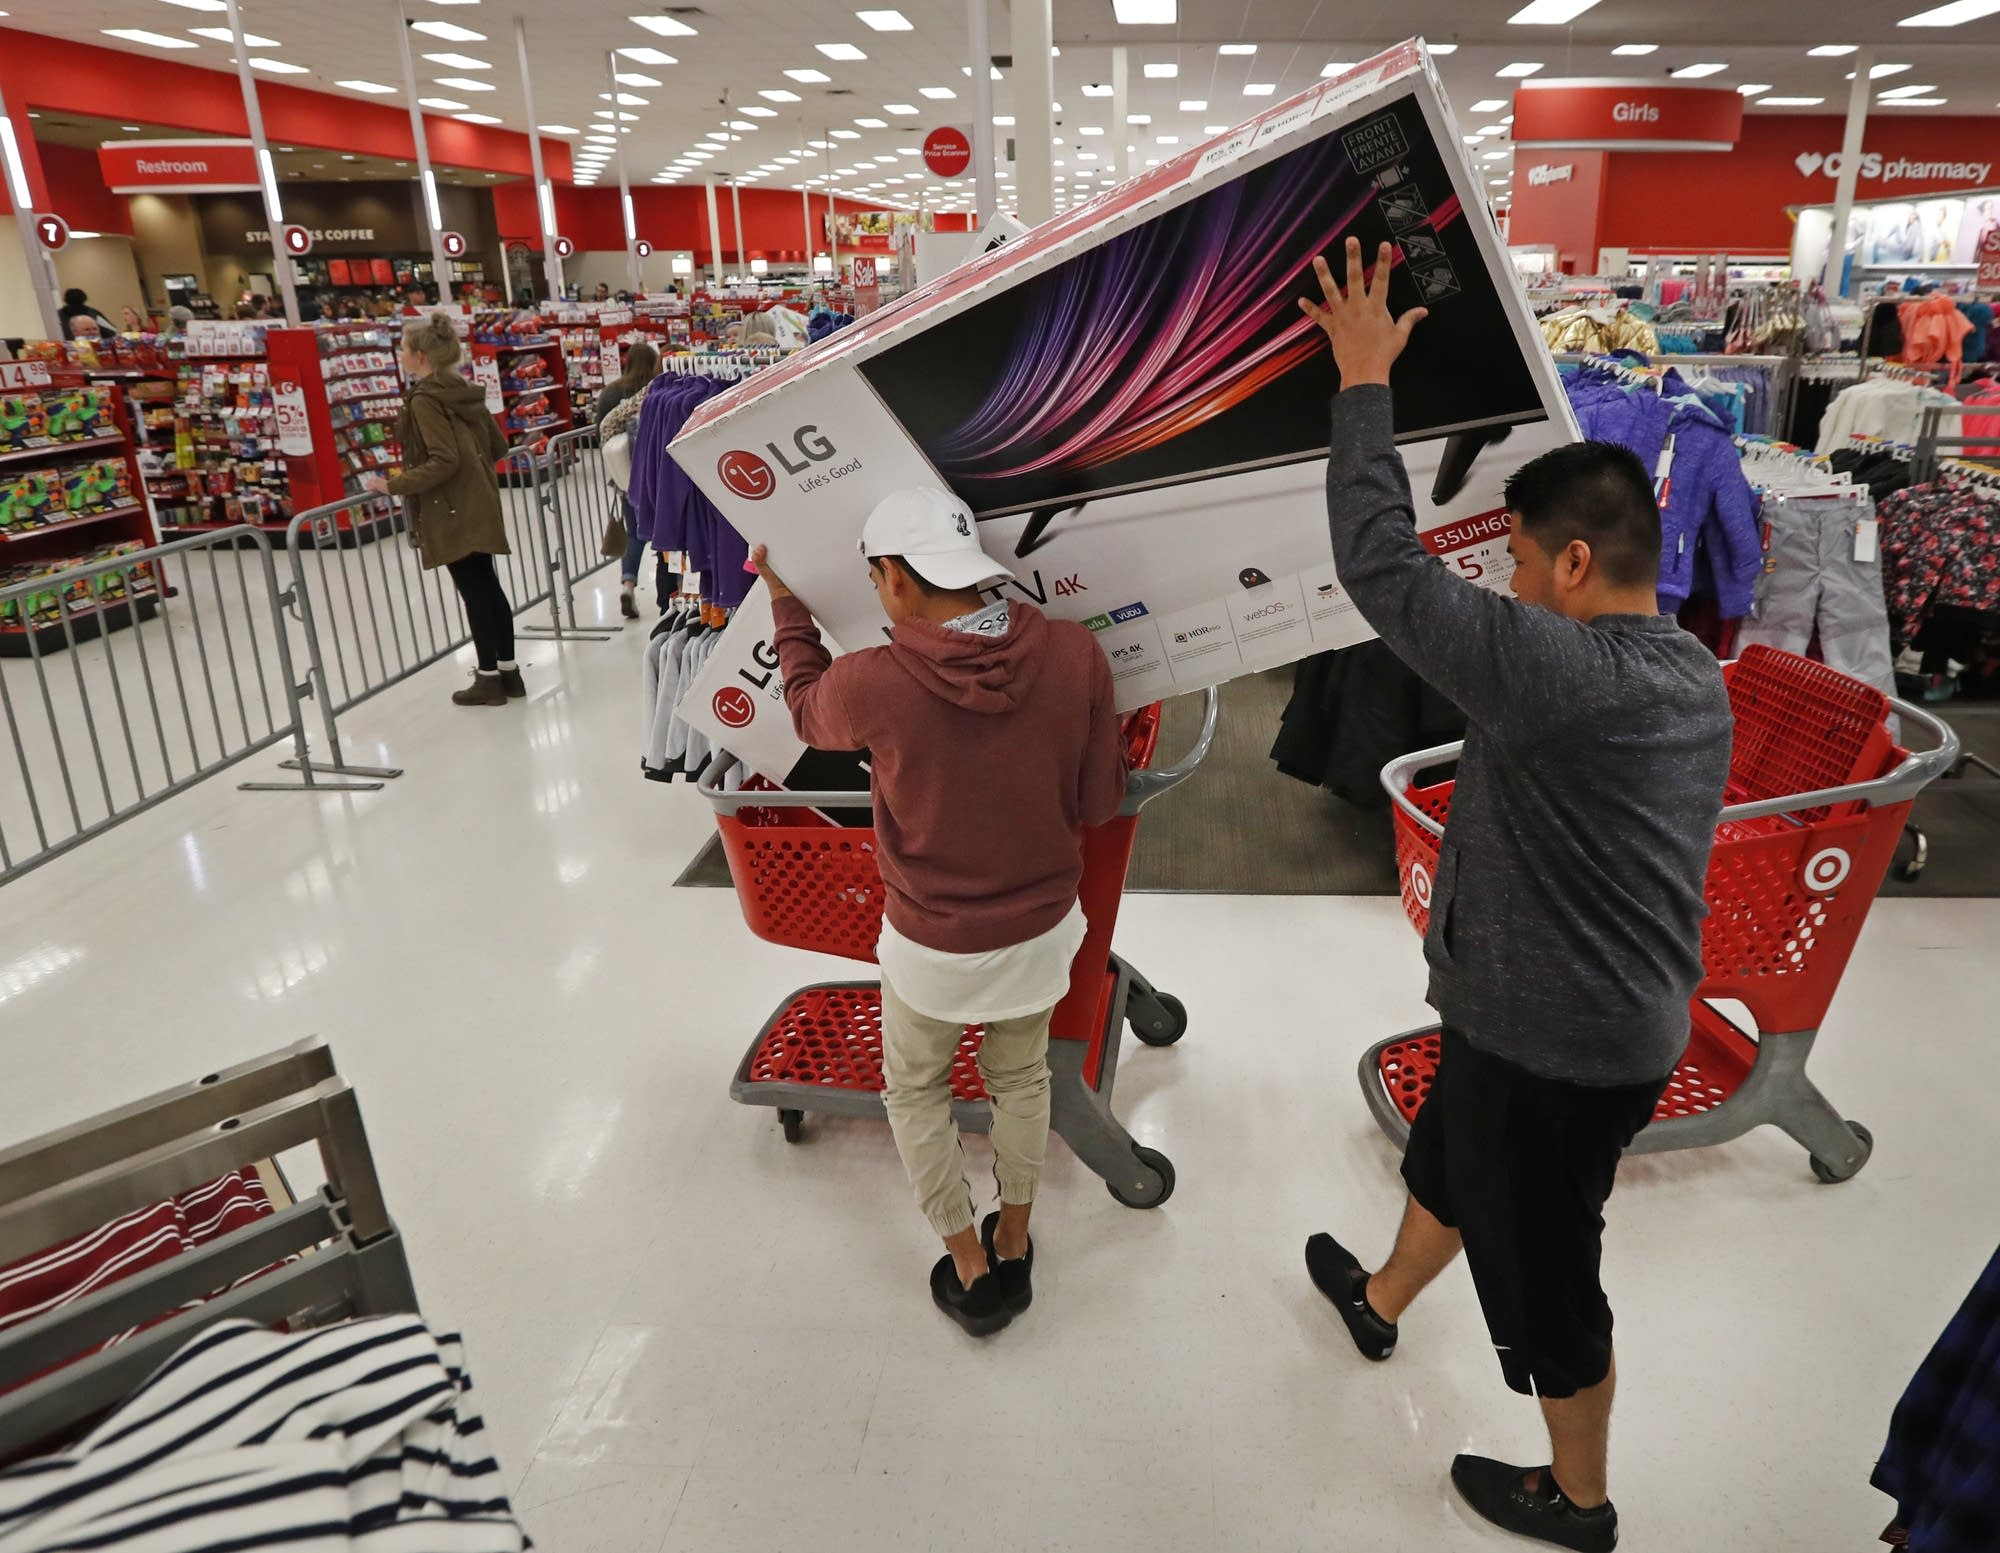 Shoppers put a TV in a cart.